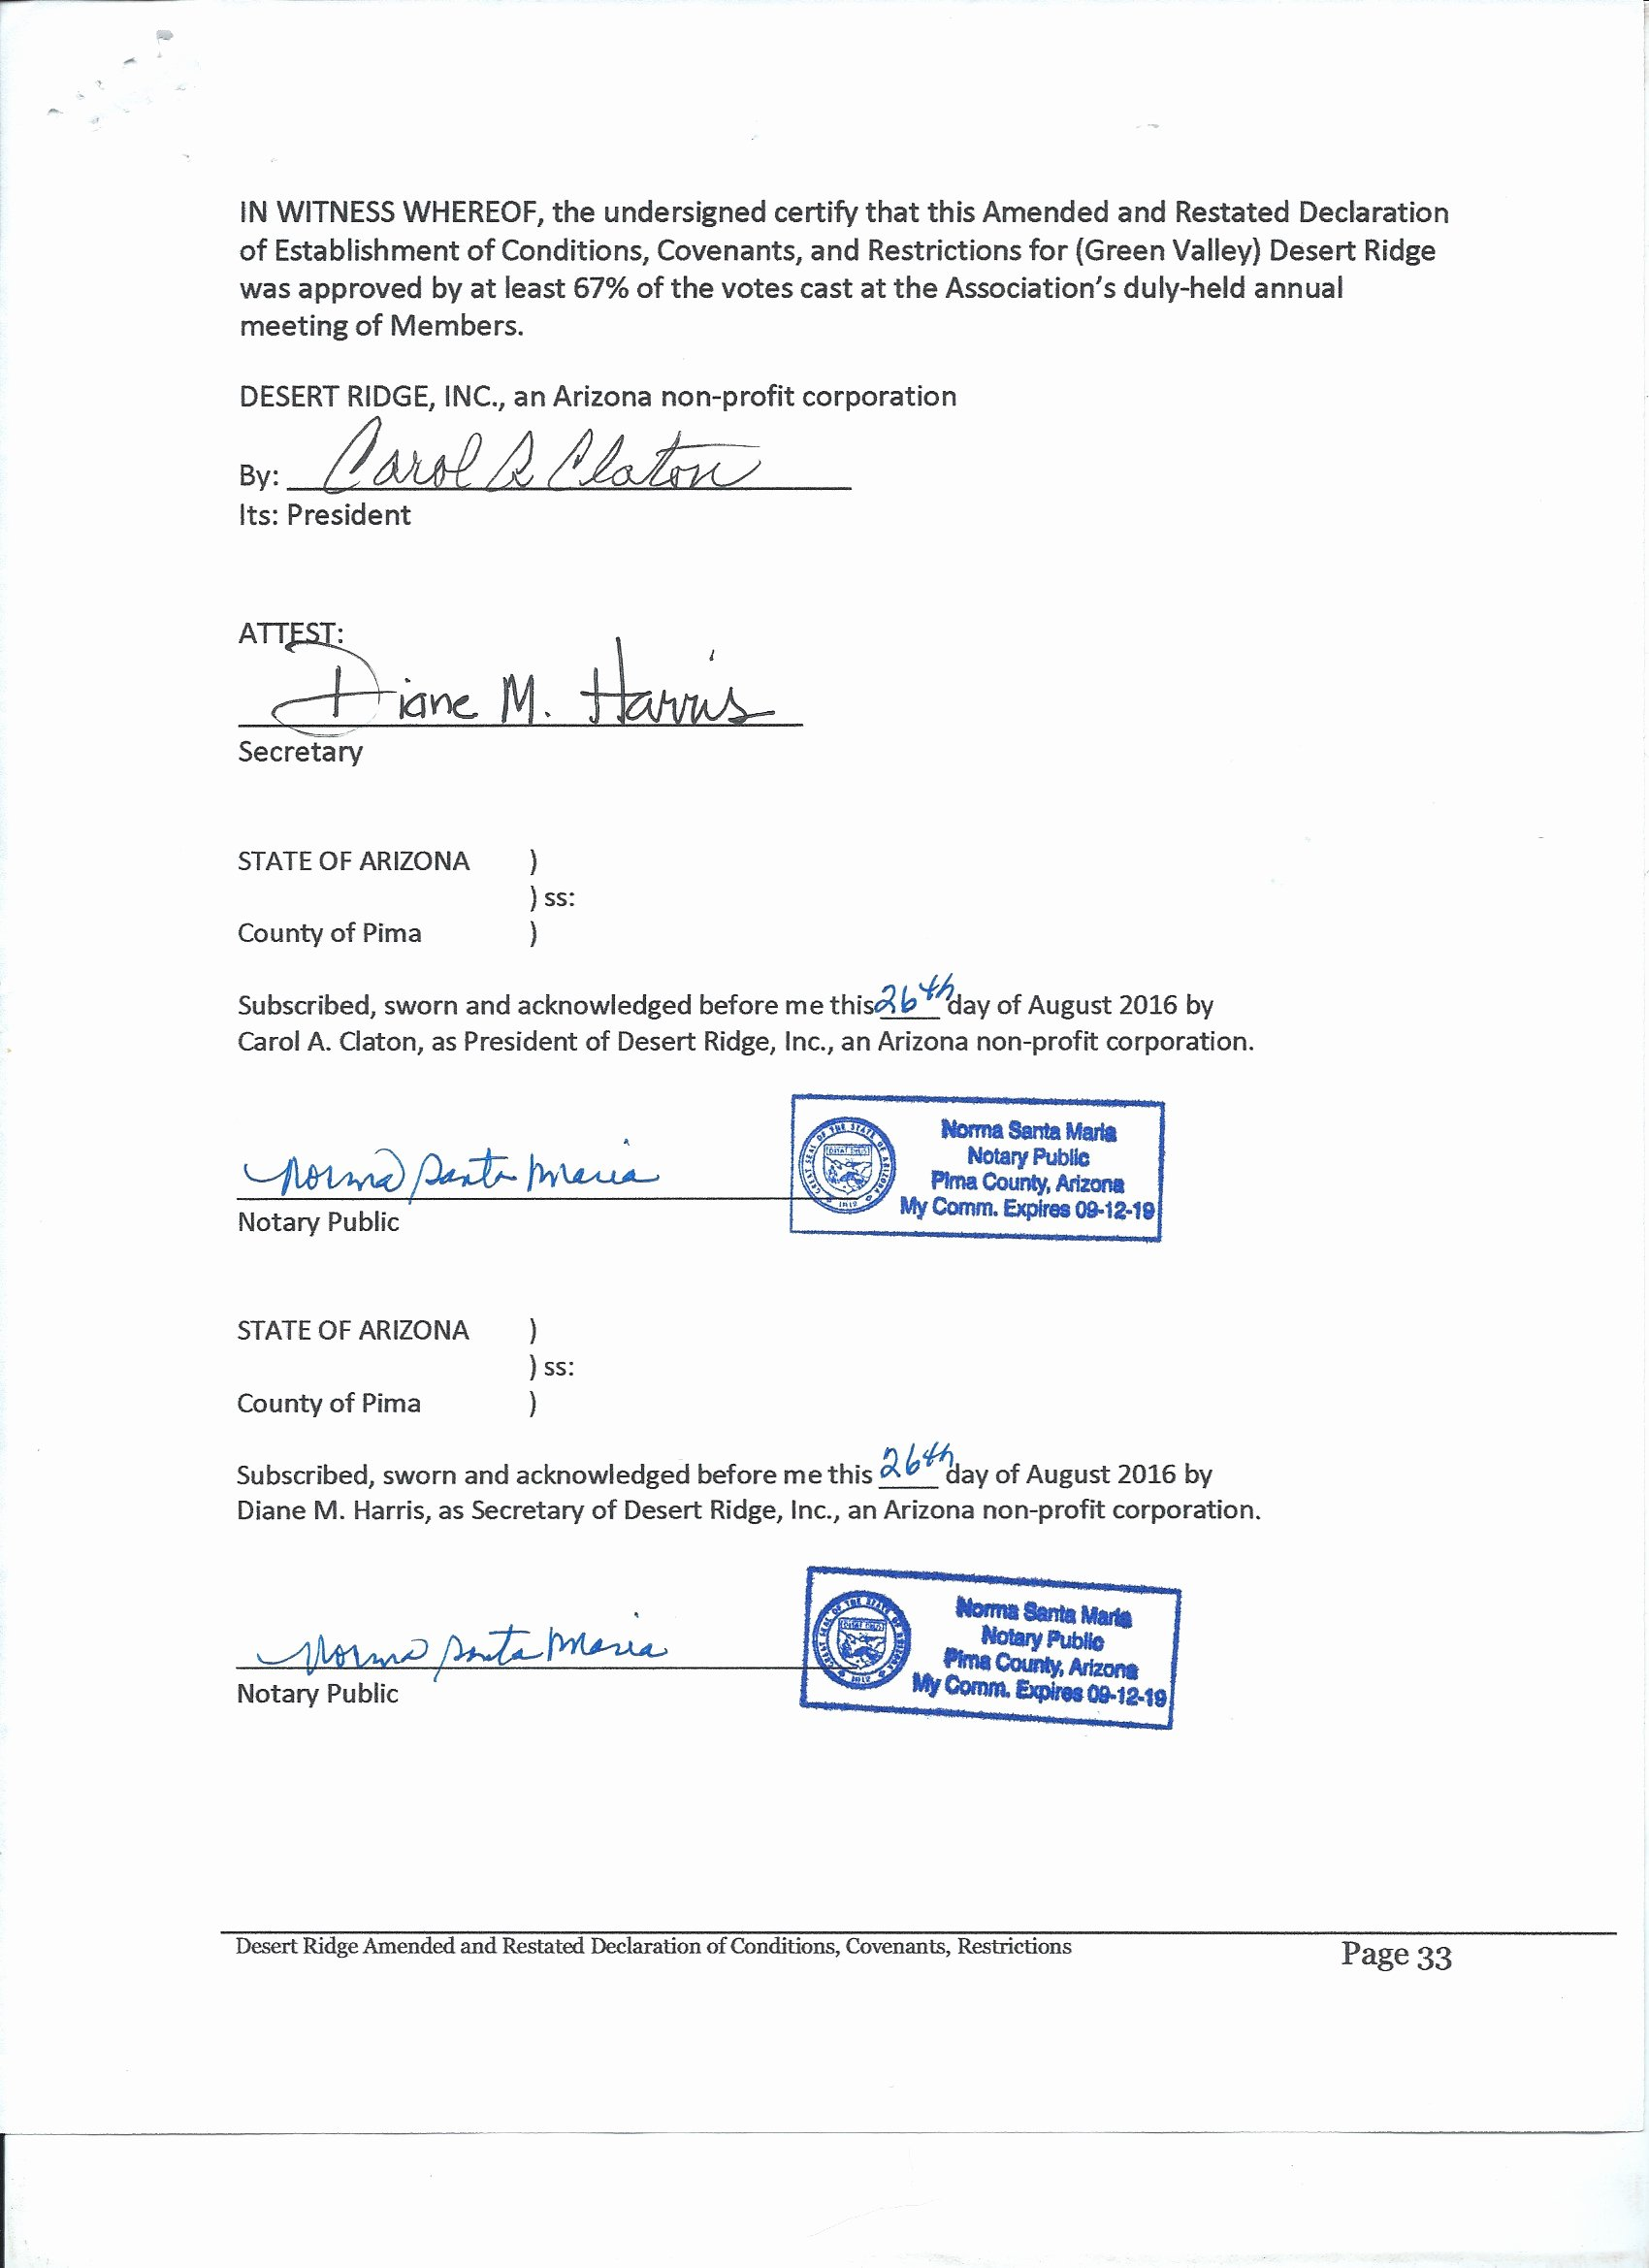 Contract Signature Page Example Beautiful Cc&rs Rules bylaws Legal Agreements Desert Ridge Hoa